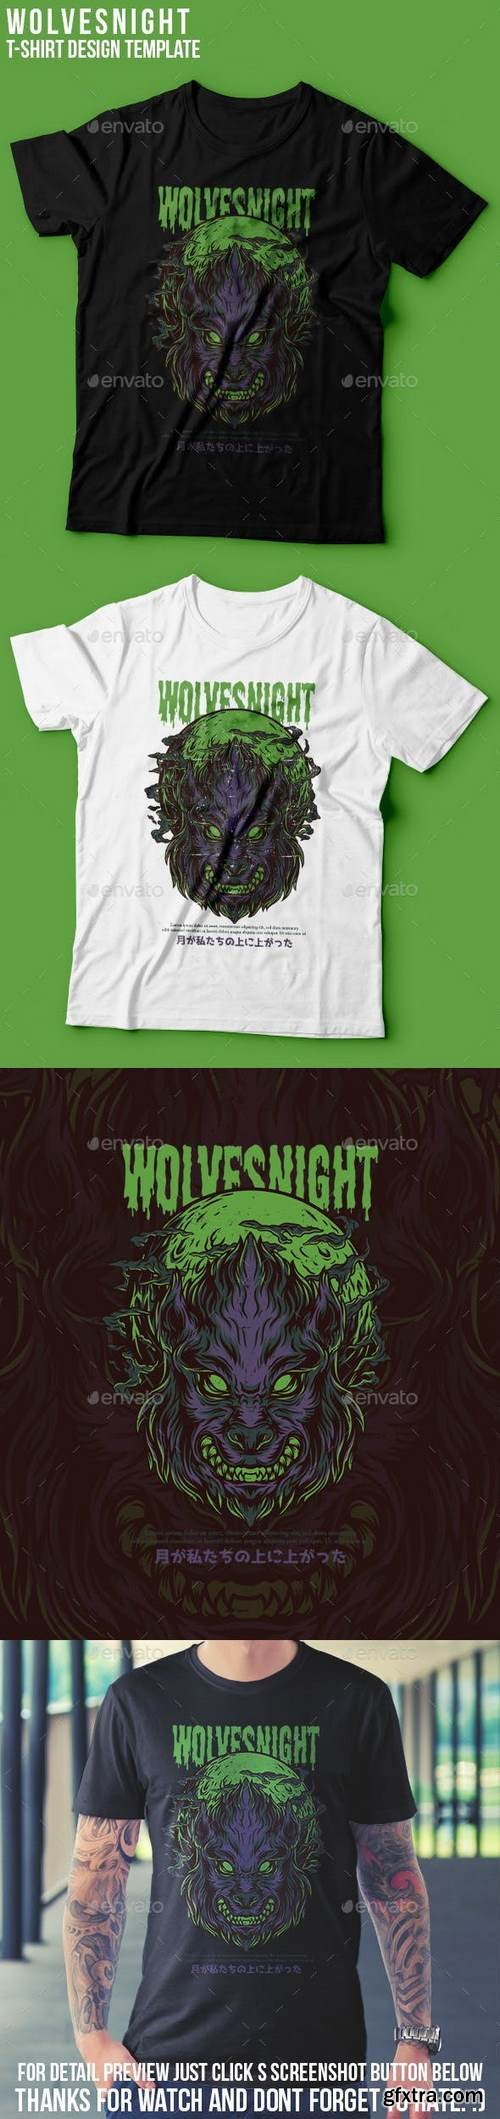 Graphicriver - Wolves Night T-Shirt Design 22939345